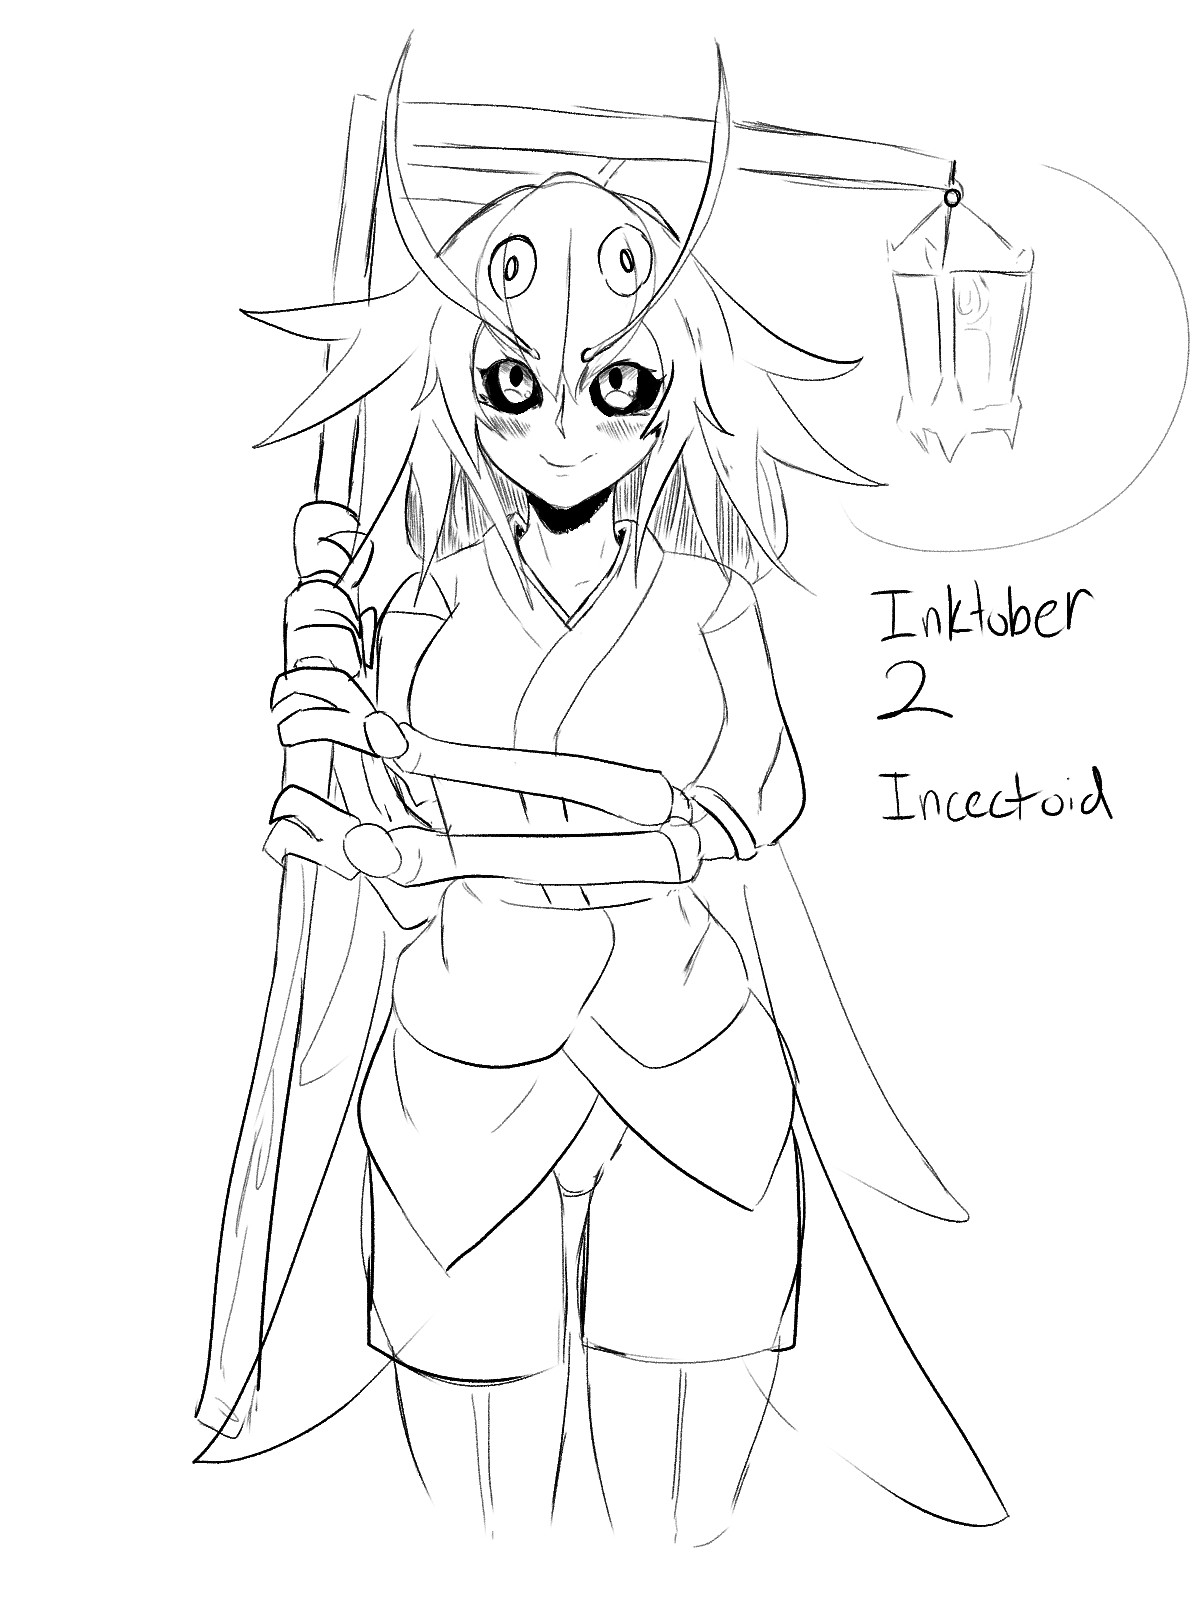 Inktober 2: Moth. join list: GBArt (261 subs)Mention History.. She looks sweet. I wish to pat her head under the lamp light